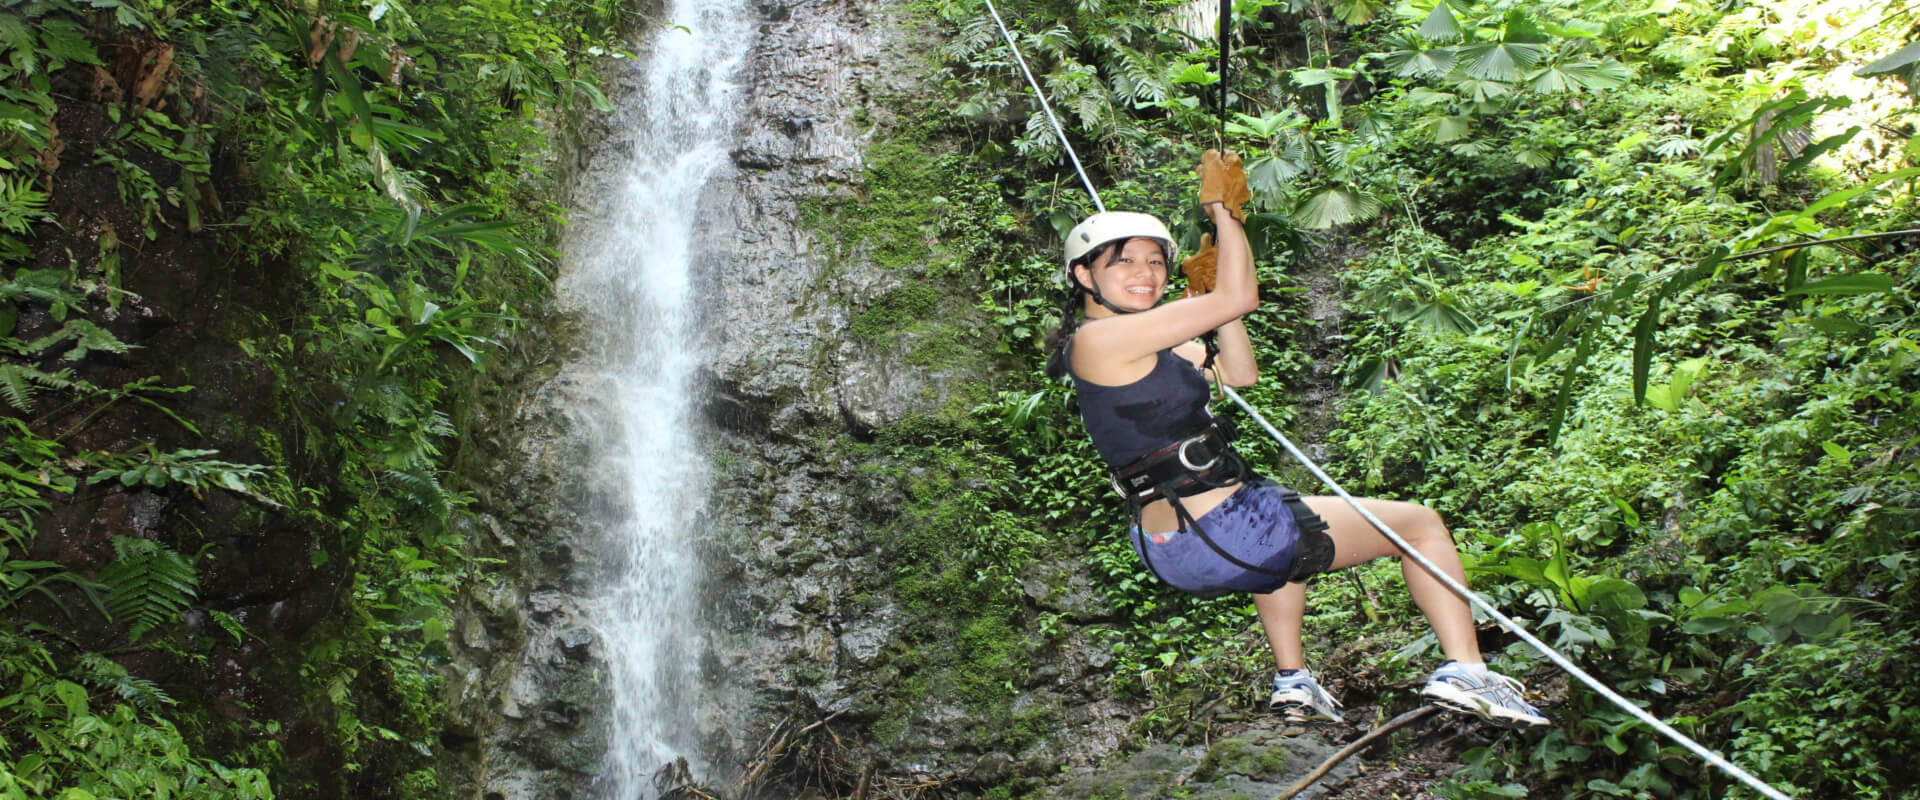 Arenal Combo Tour Canyoning and Ziplining | Costa Rica Jade Tours